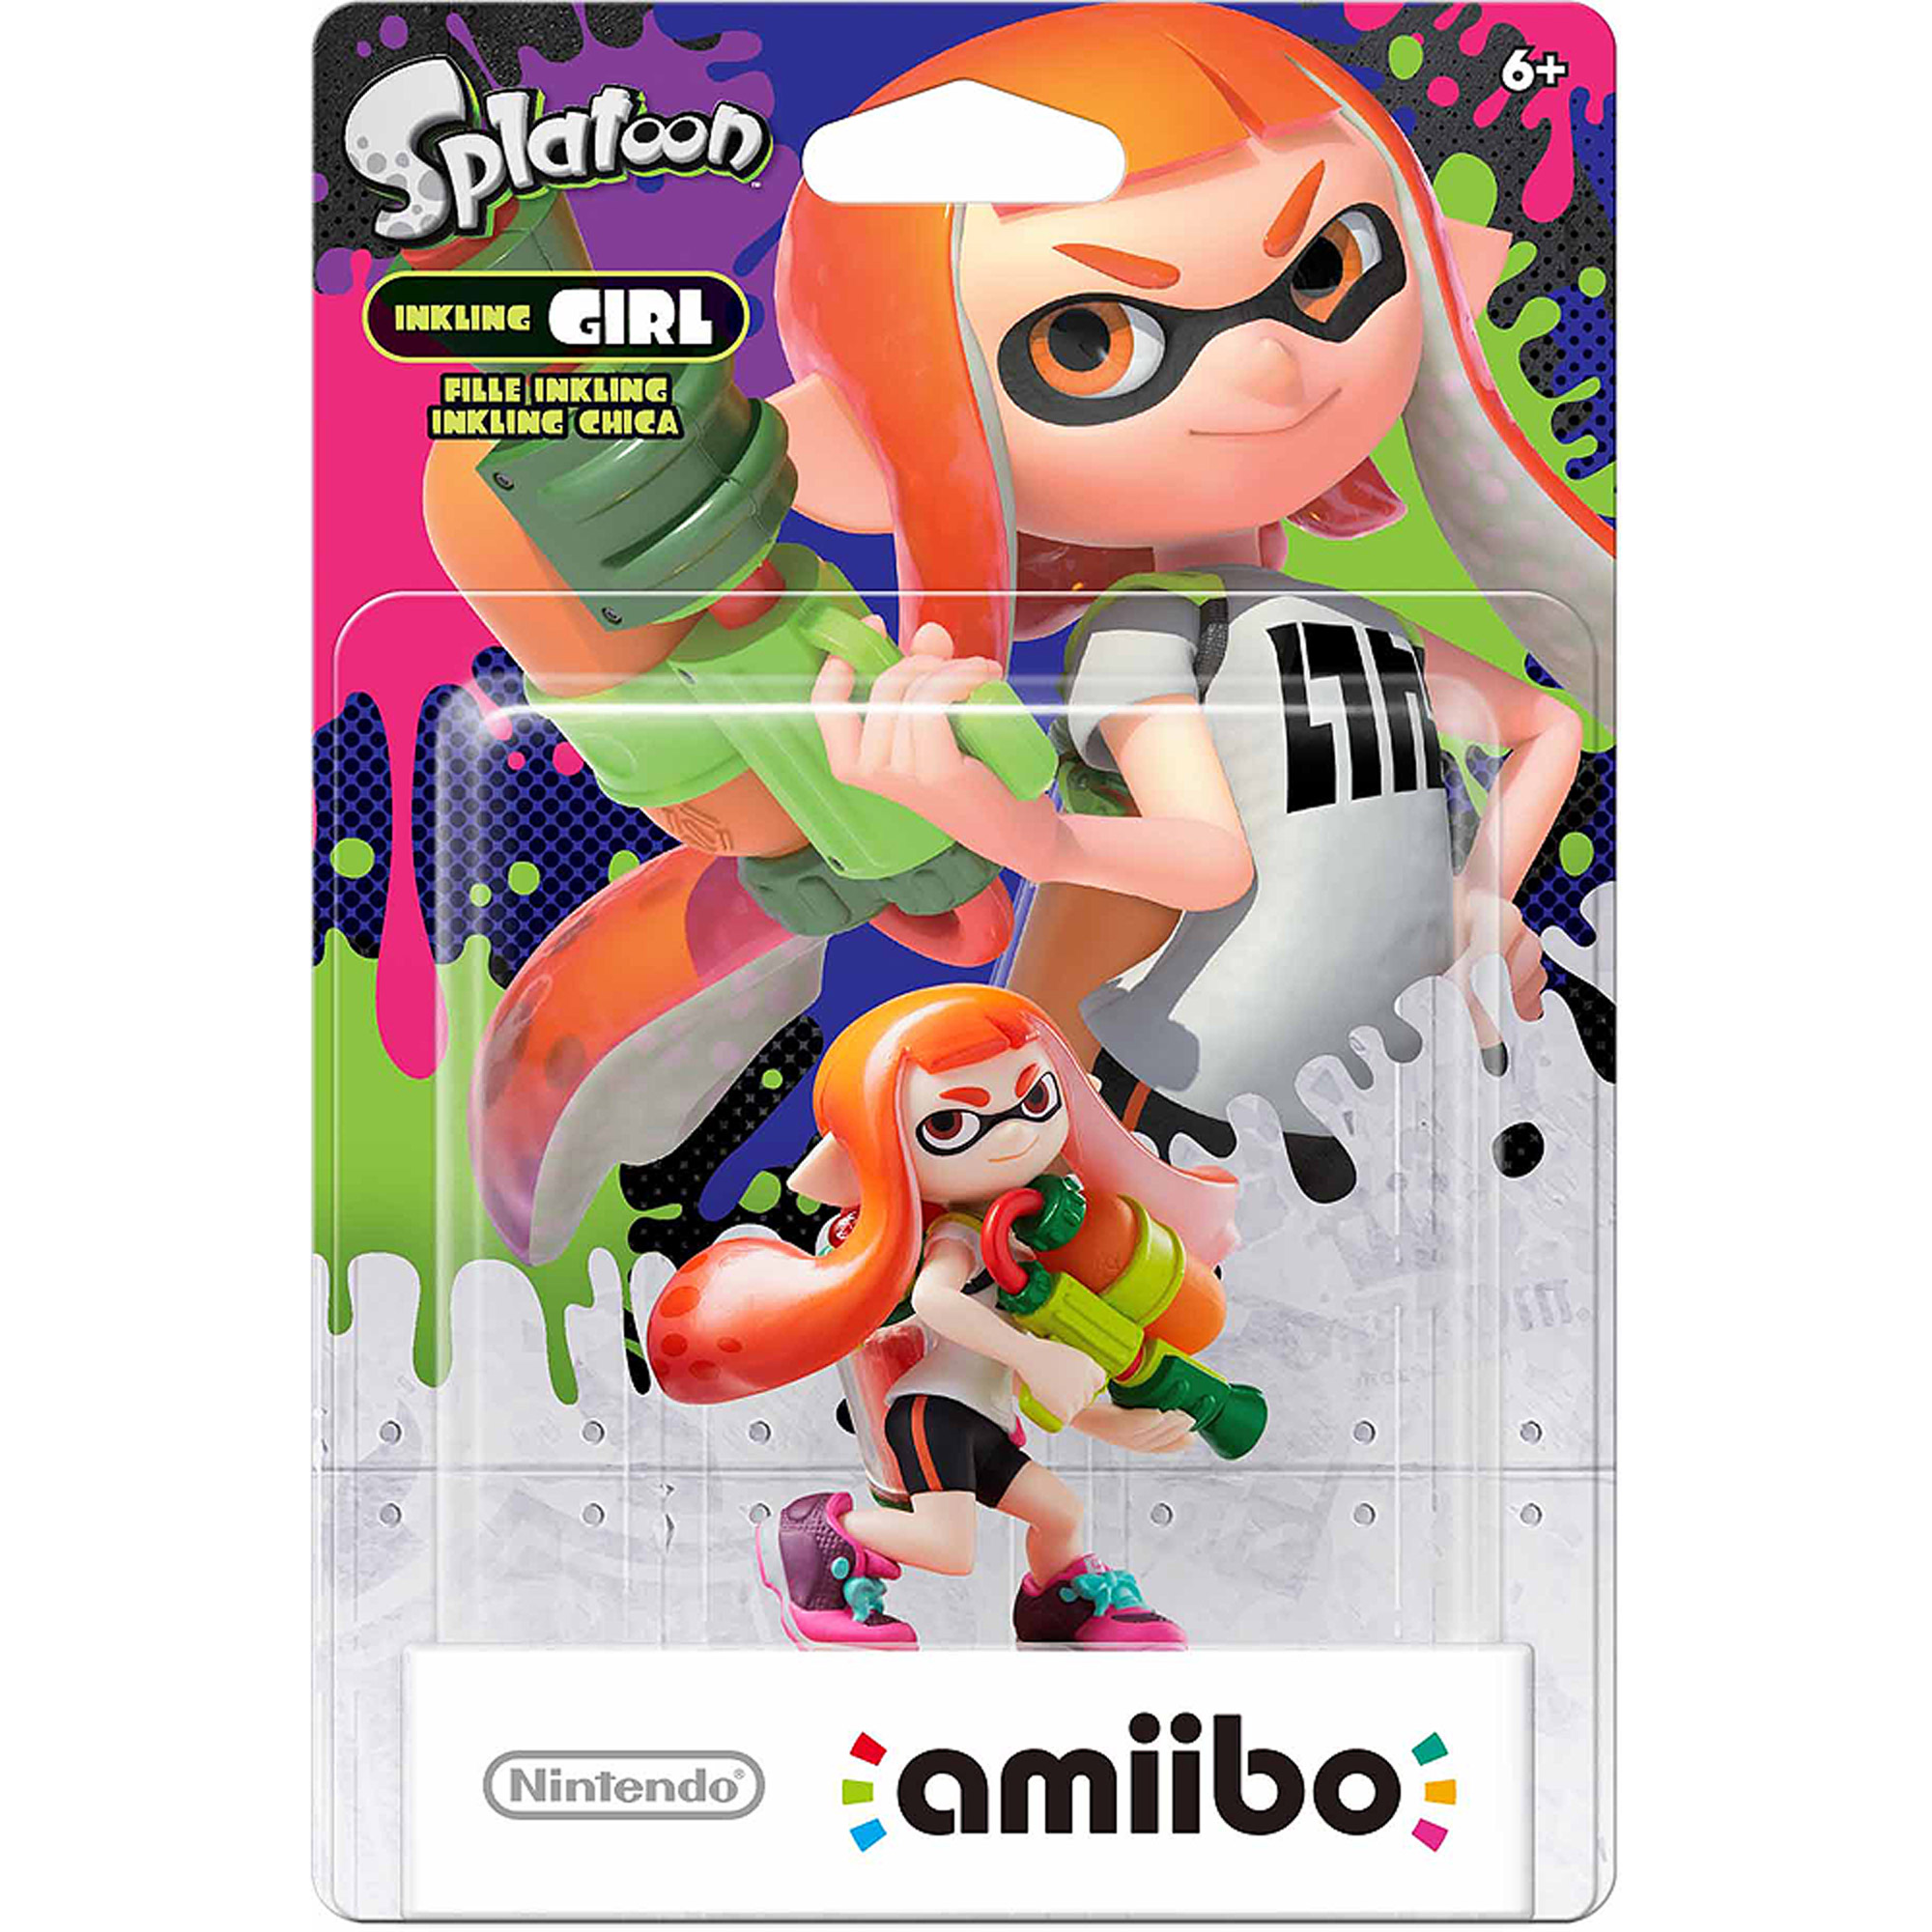 Inkling Girl Splatoon Series Amiibo (Nintendo WiiU or Nintendo 3DS)